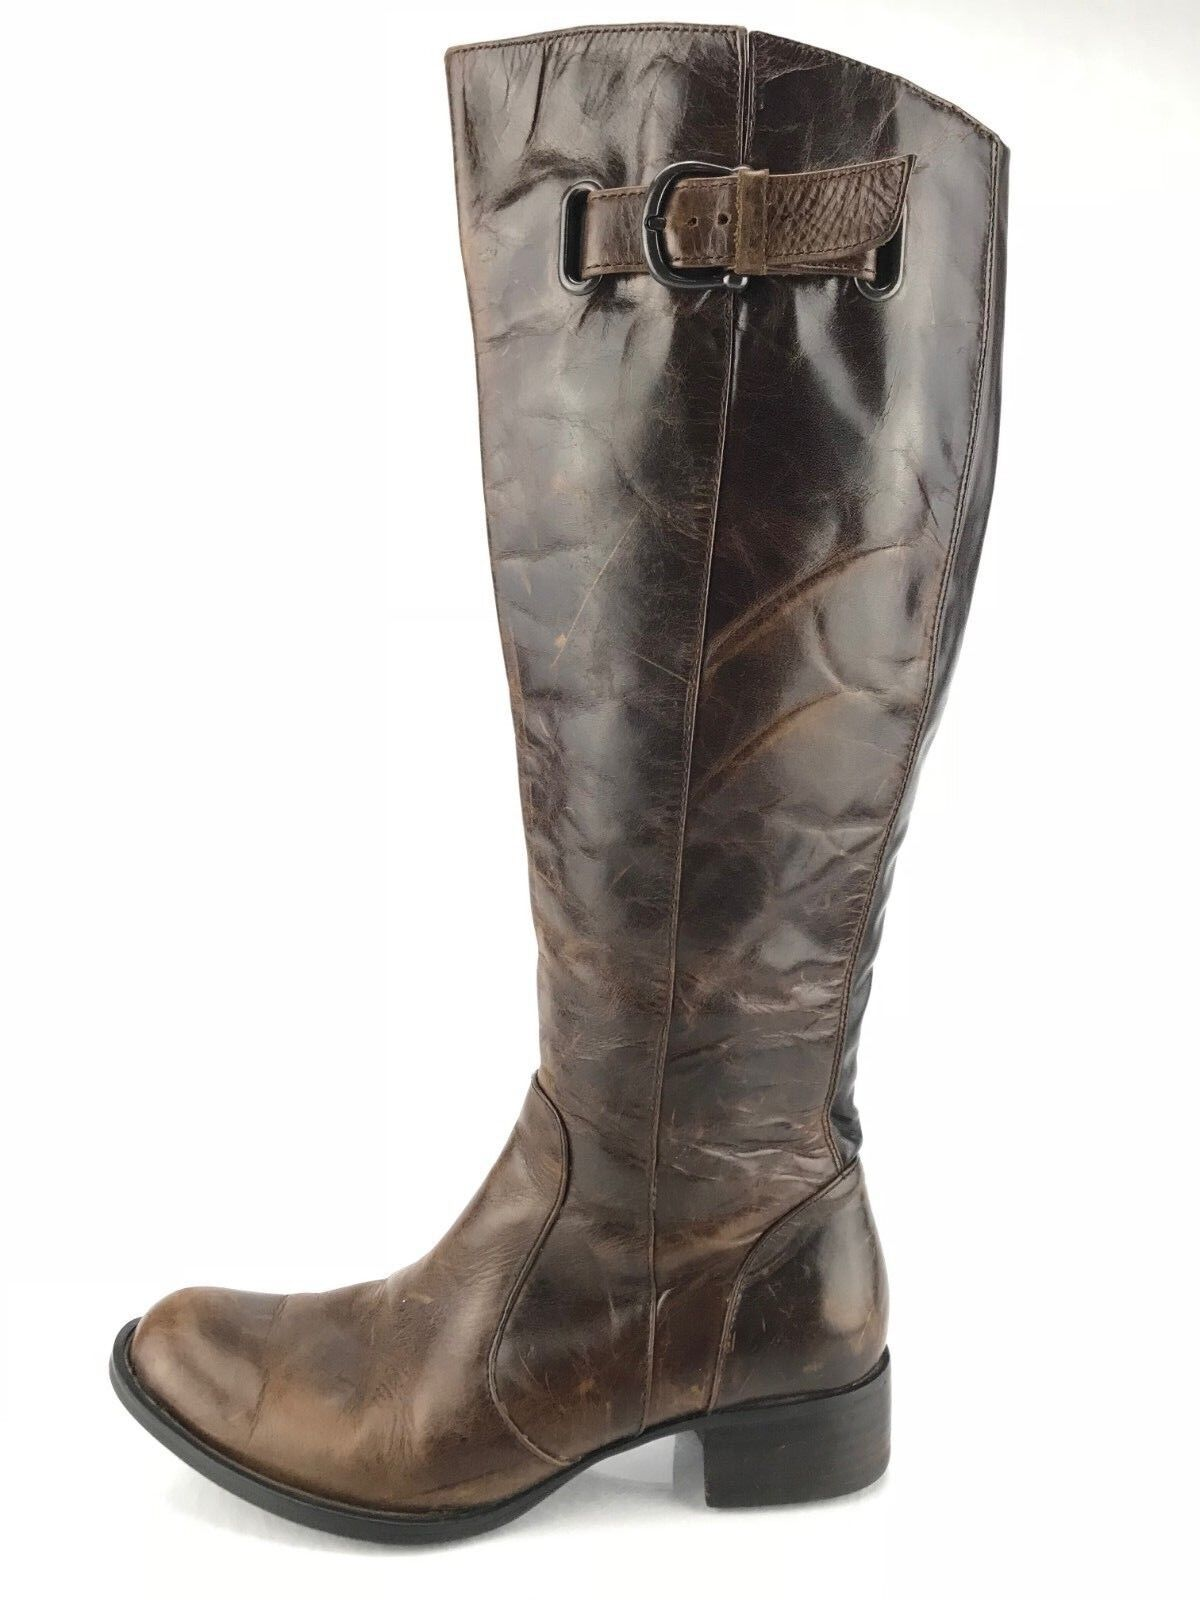 Born Riding Boots - Roxie Knee High Side Zip Leather shoes Women's 6.5 M Brown